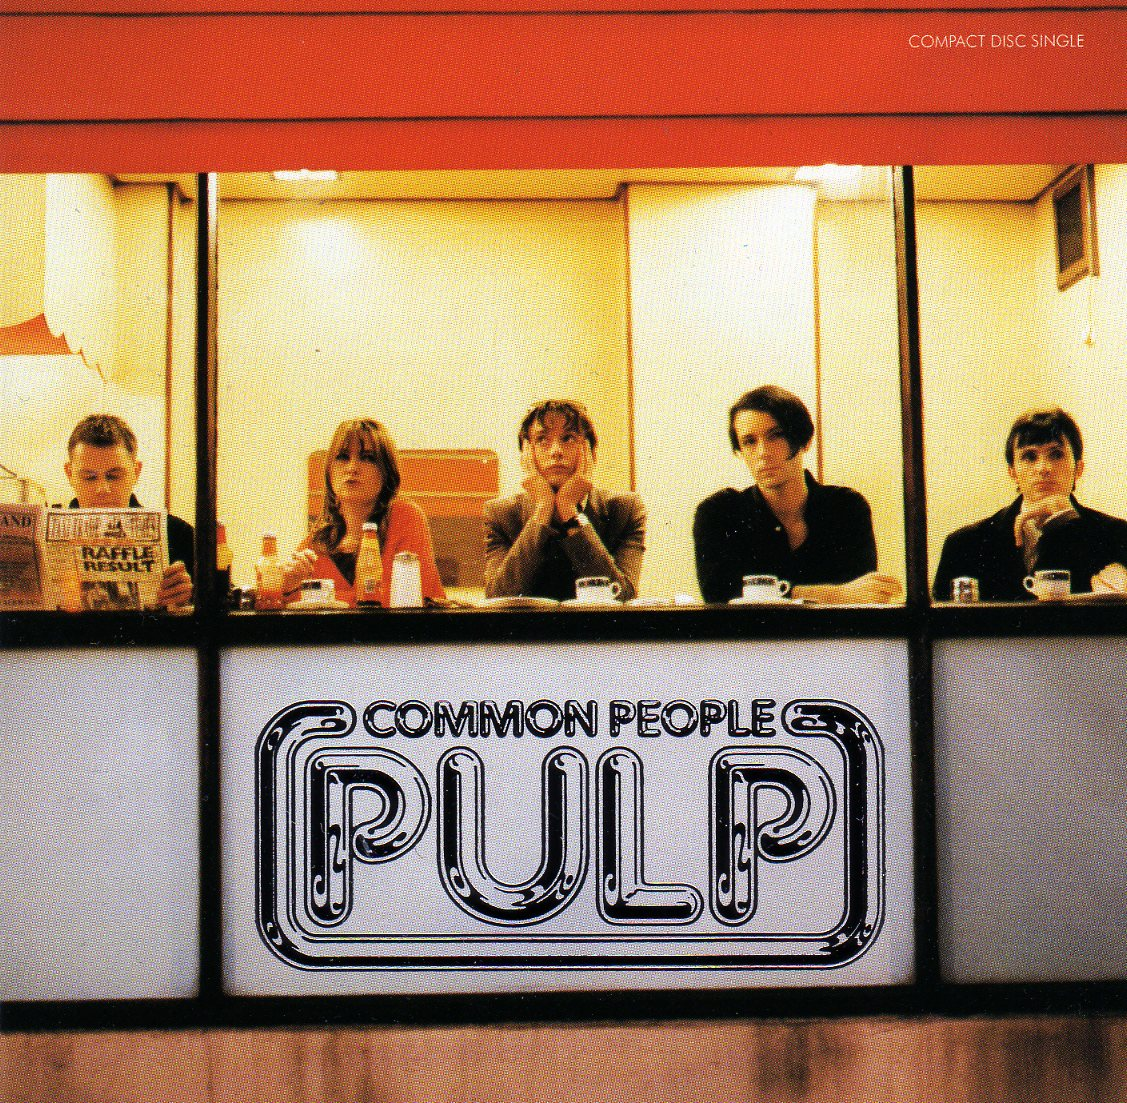 펄프- 보통사람들 Common people (Different C..